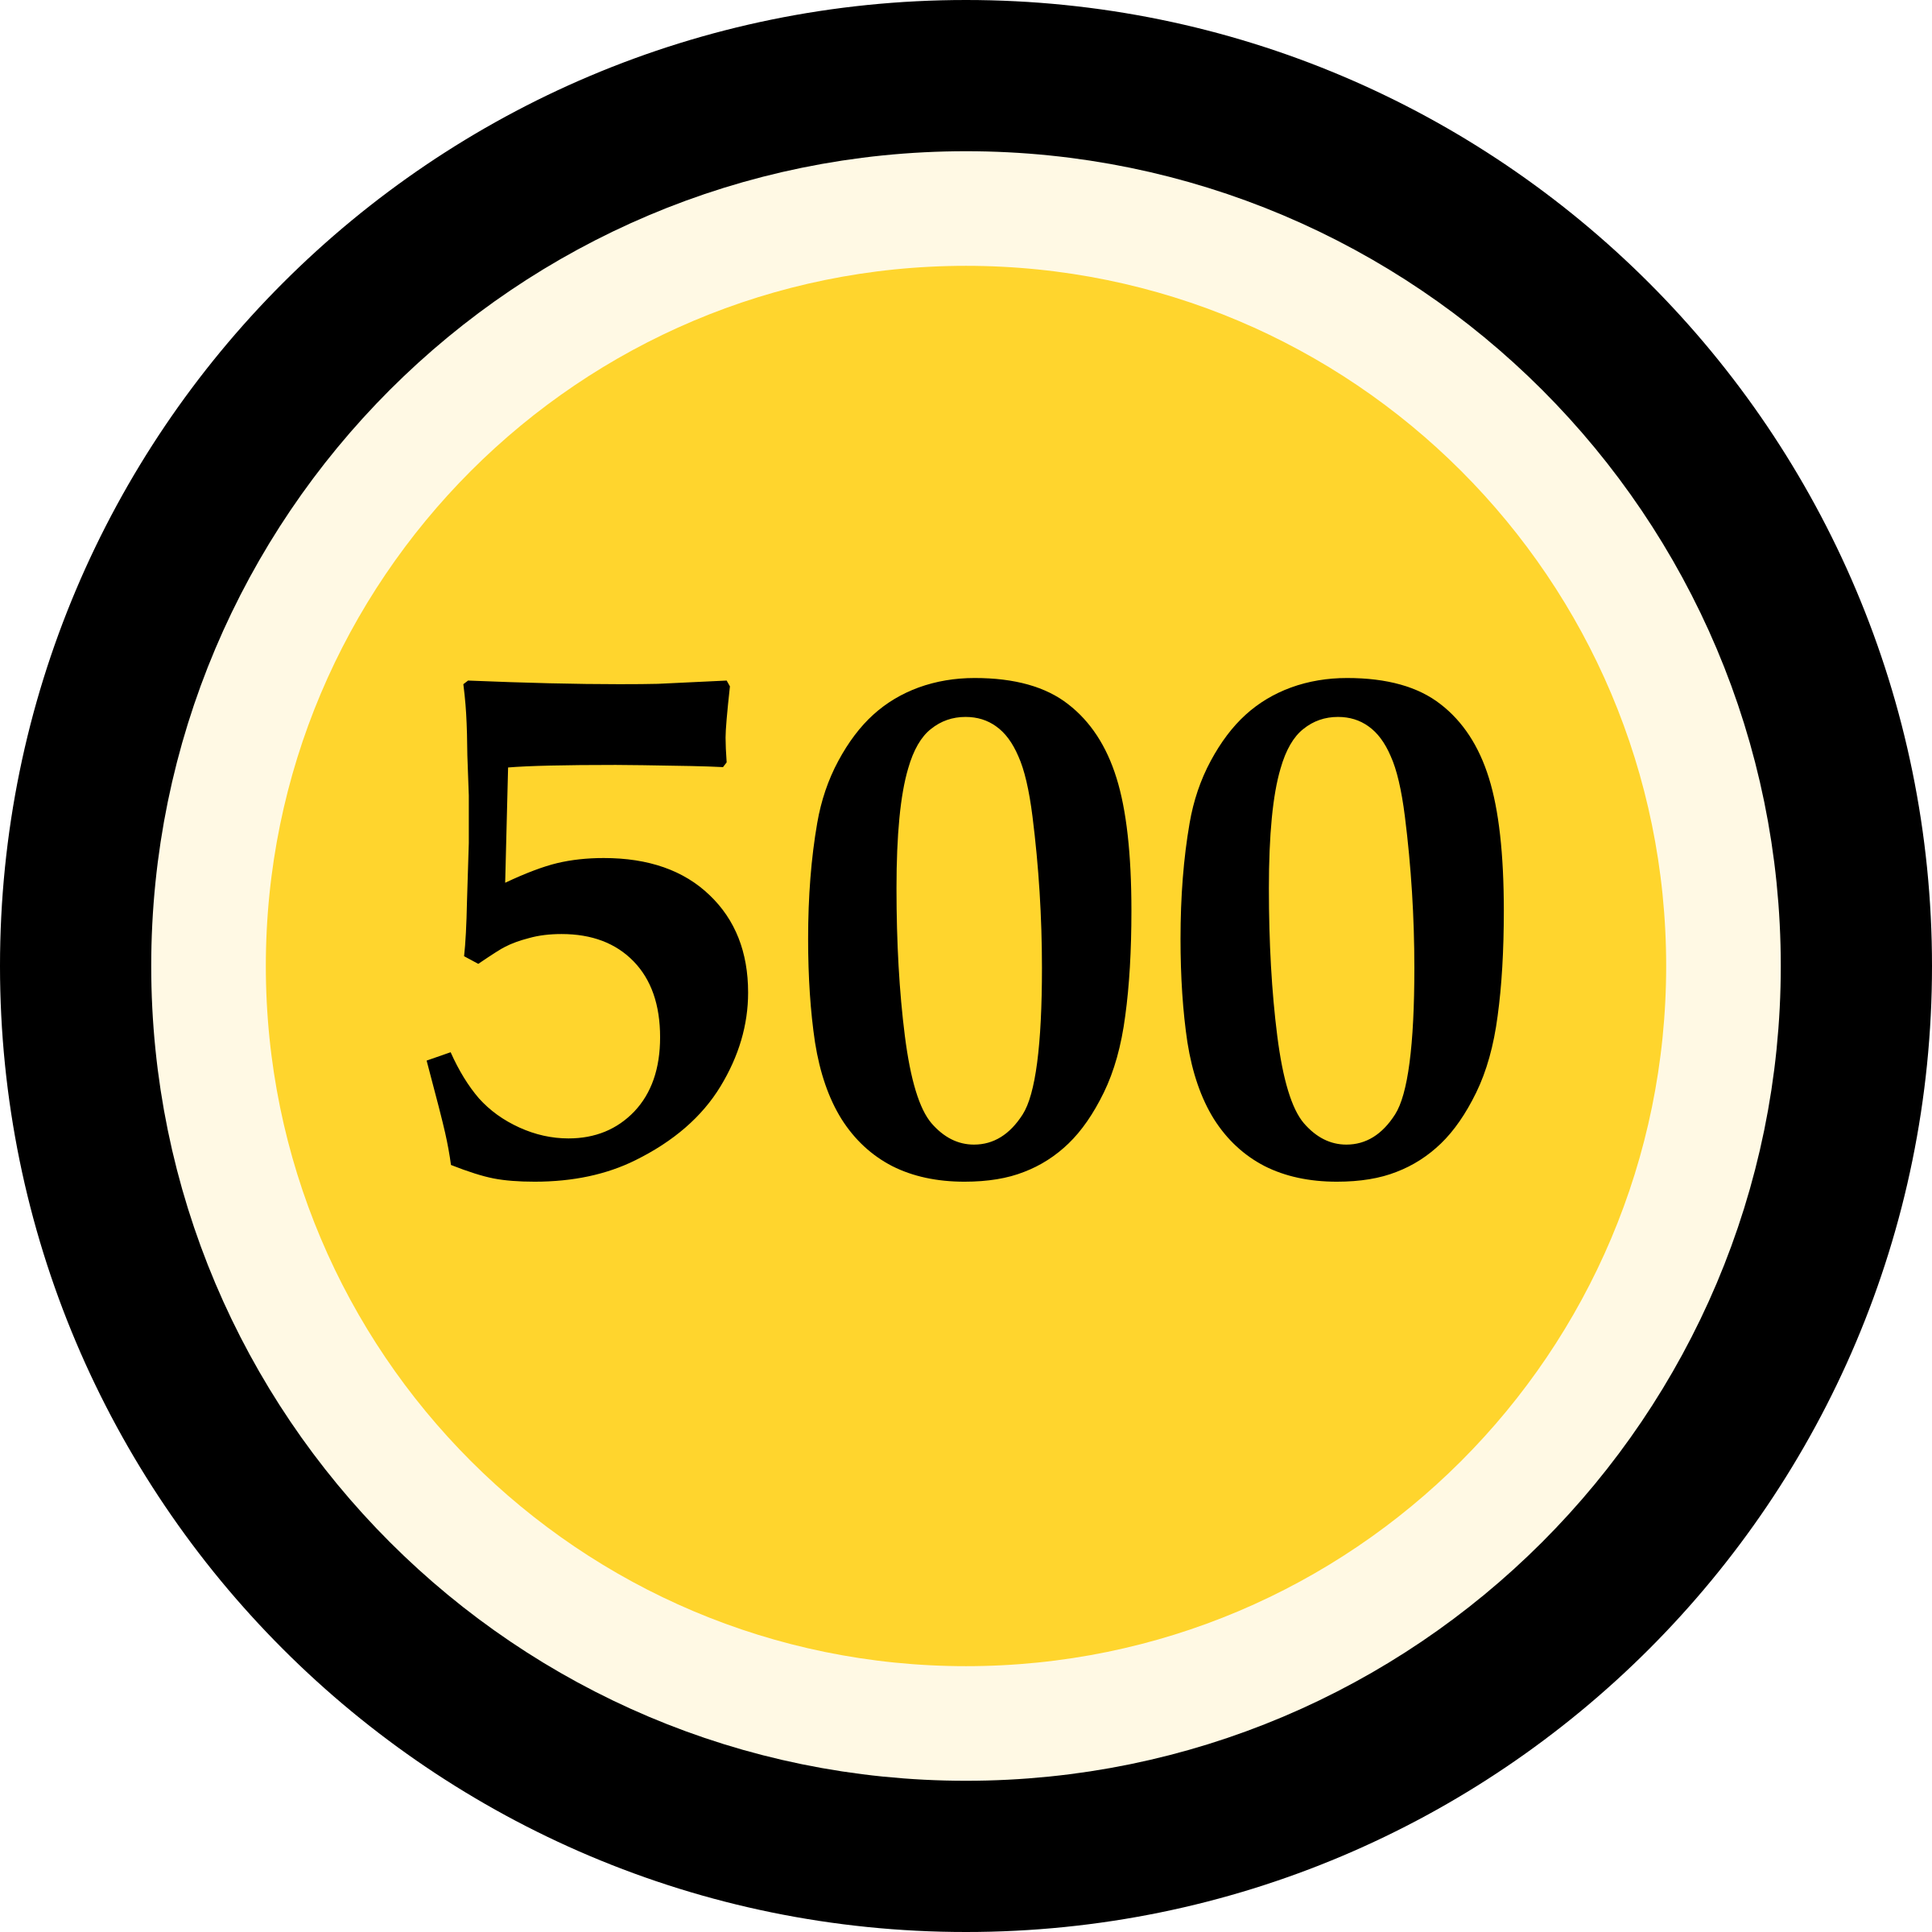 Coin - 500 by Technaturally